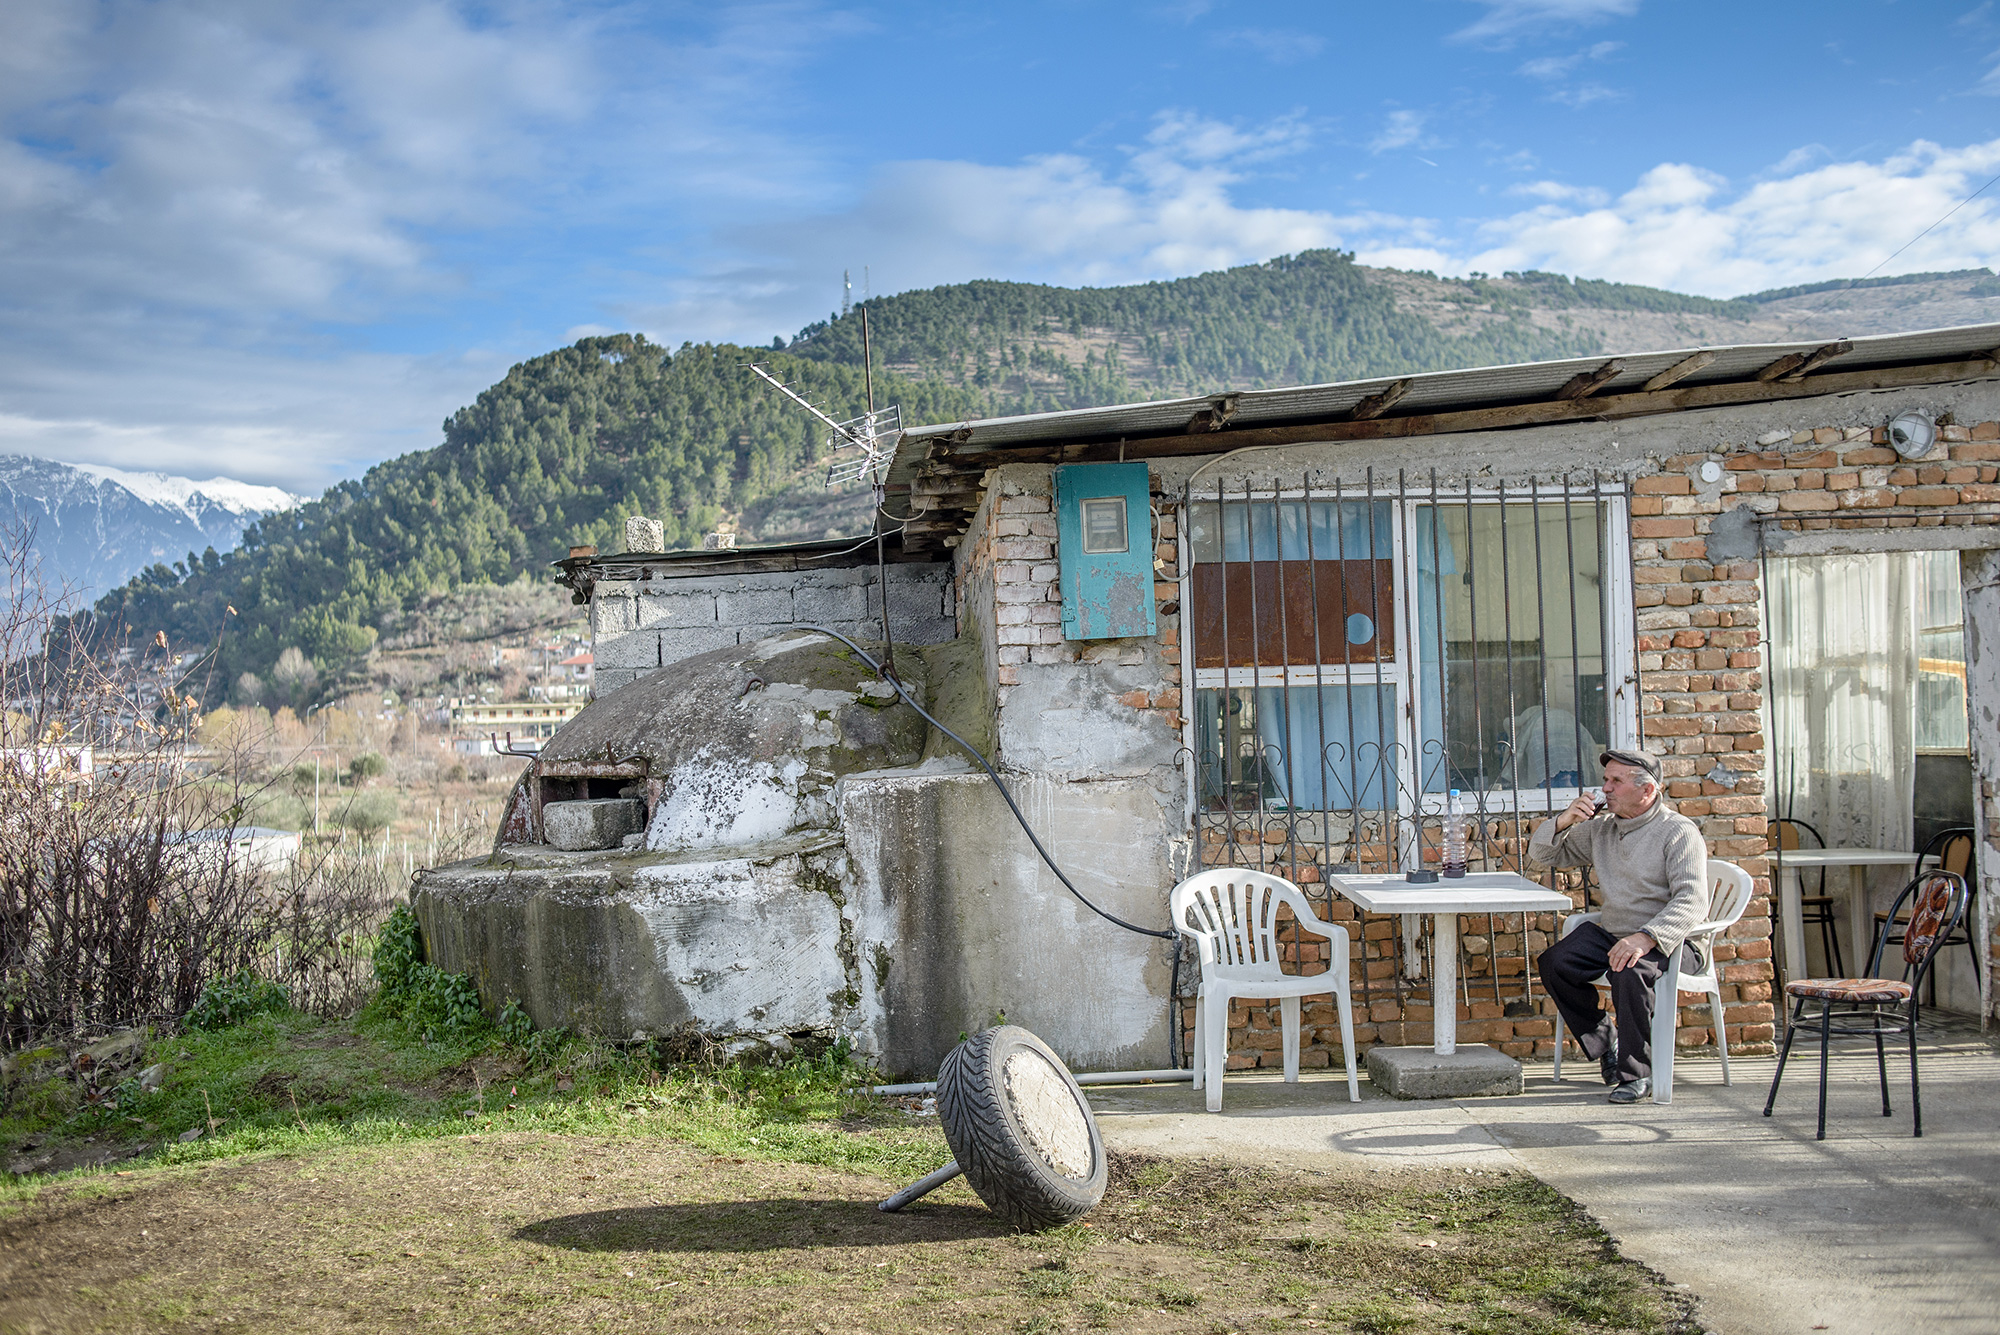 Mr. Bregu, the owner of a cafe drinks wine in the backyard of his cafe, Berat, Albania